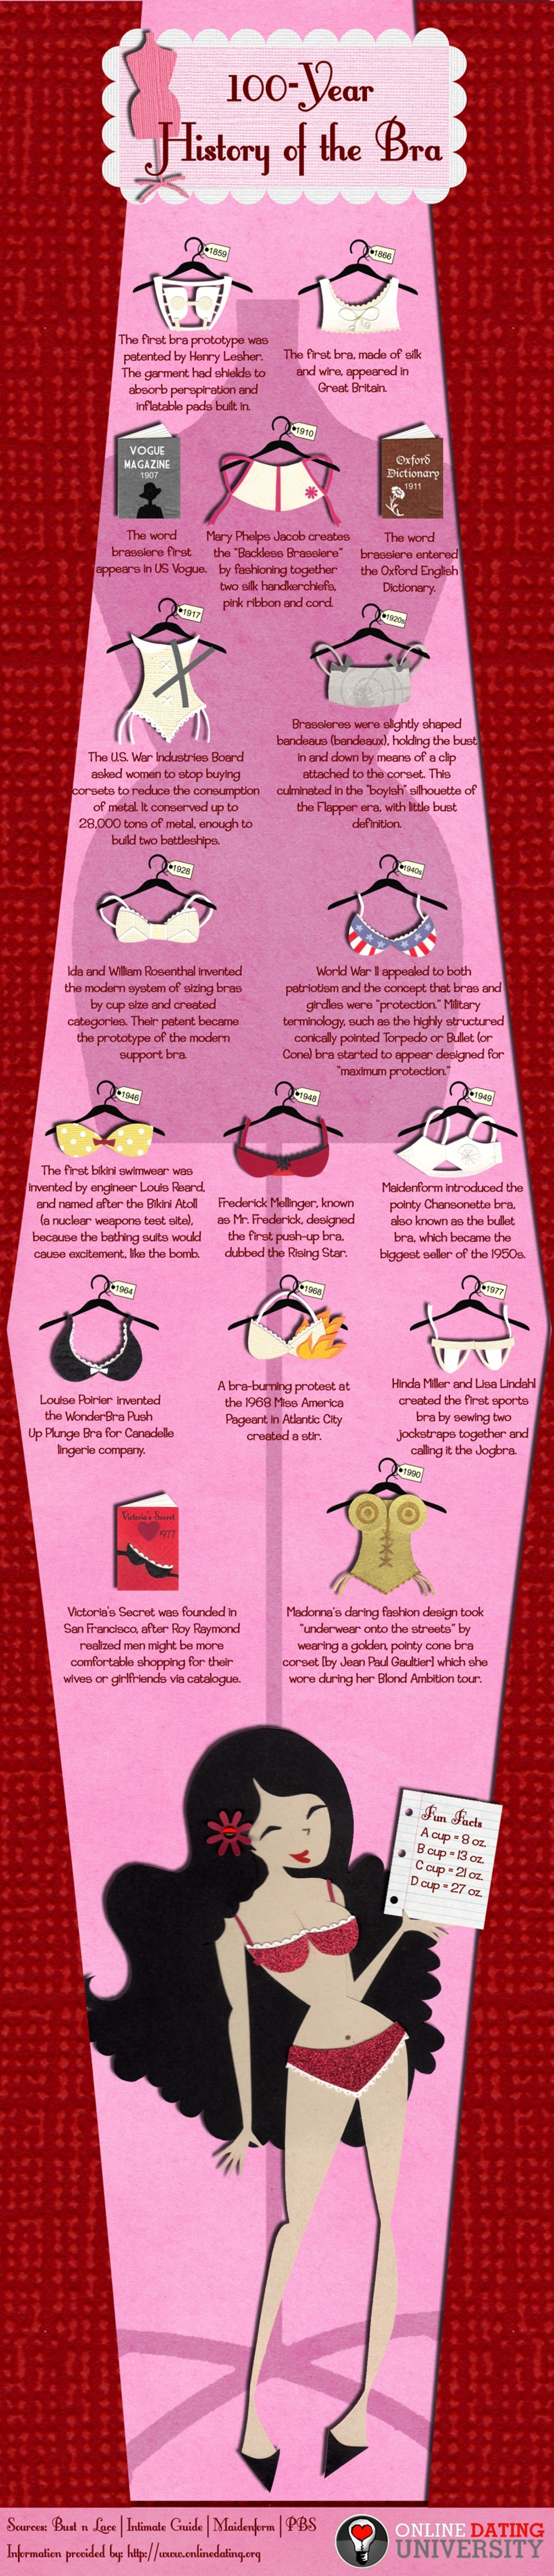 100-Year History of the Bra Infographic